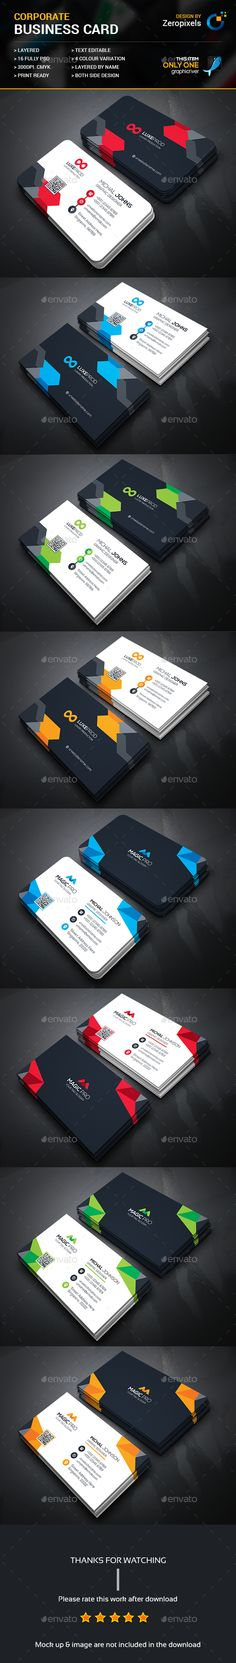 Creative Business Card Templates PSD Bundle. Download here: https://graphicriver.net/item/creative-business-card-bundle/17161554?ref=ksioks